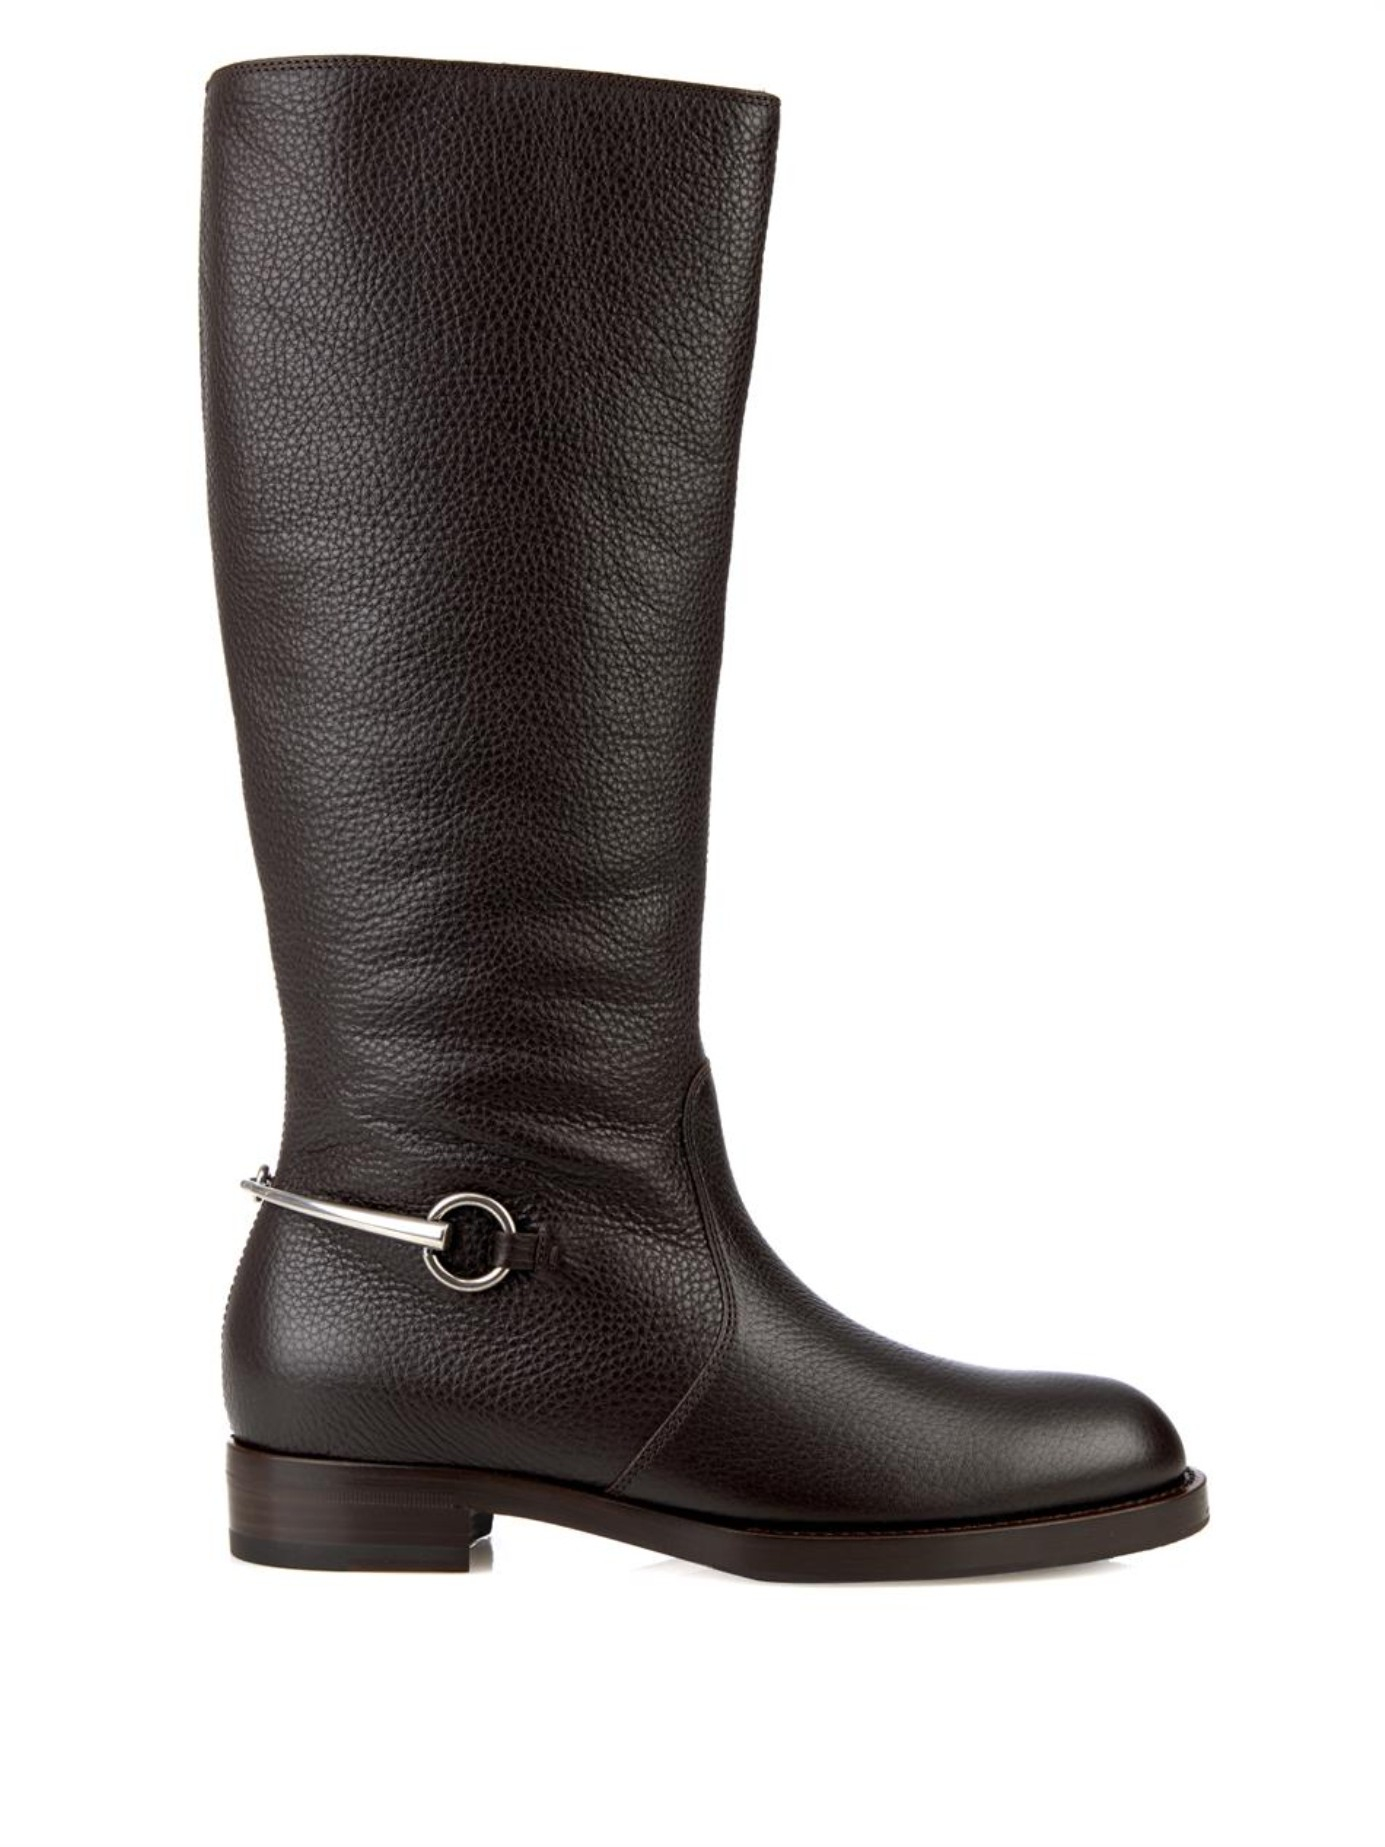 wwcIyaurmN Leather Riding Boots H0RdYz3fh